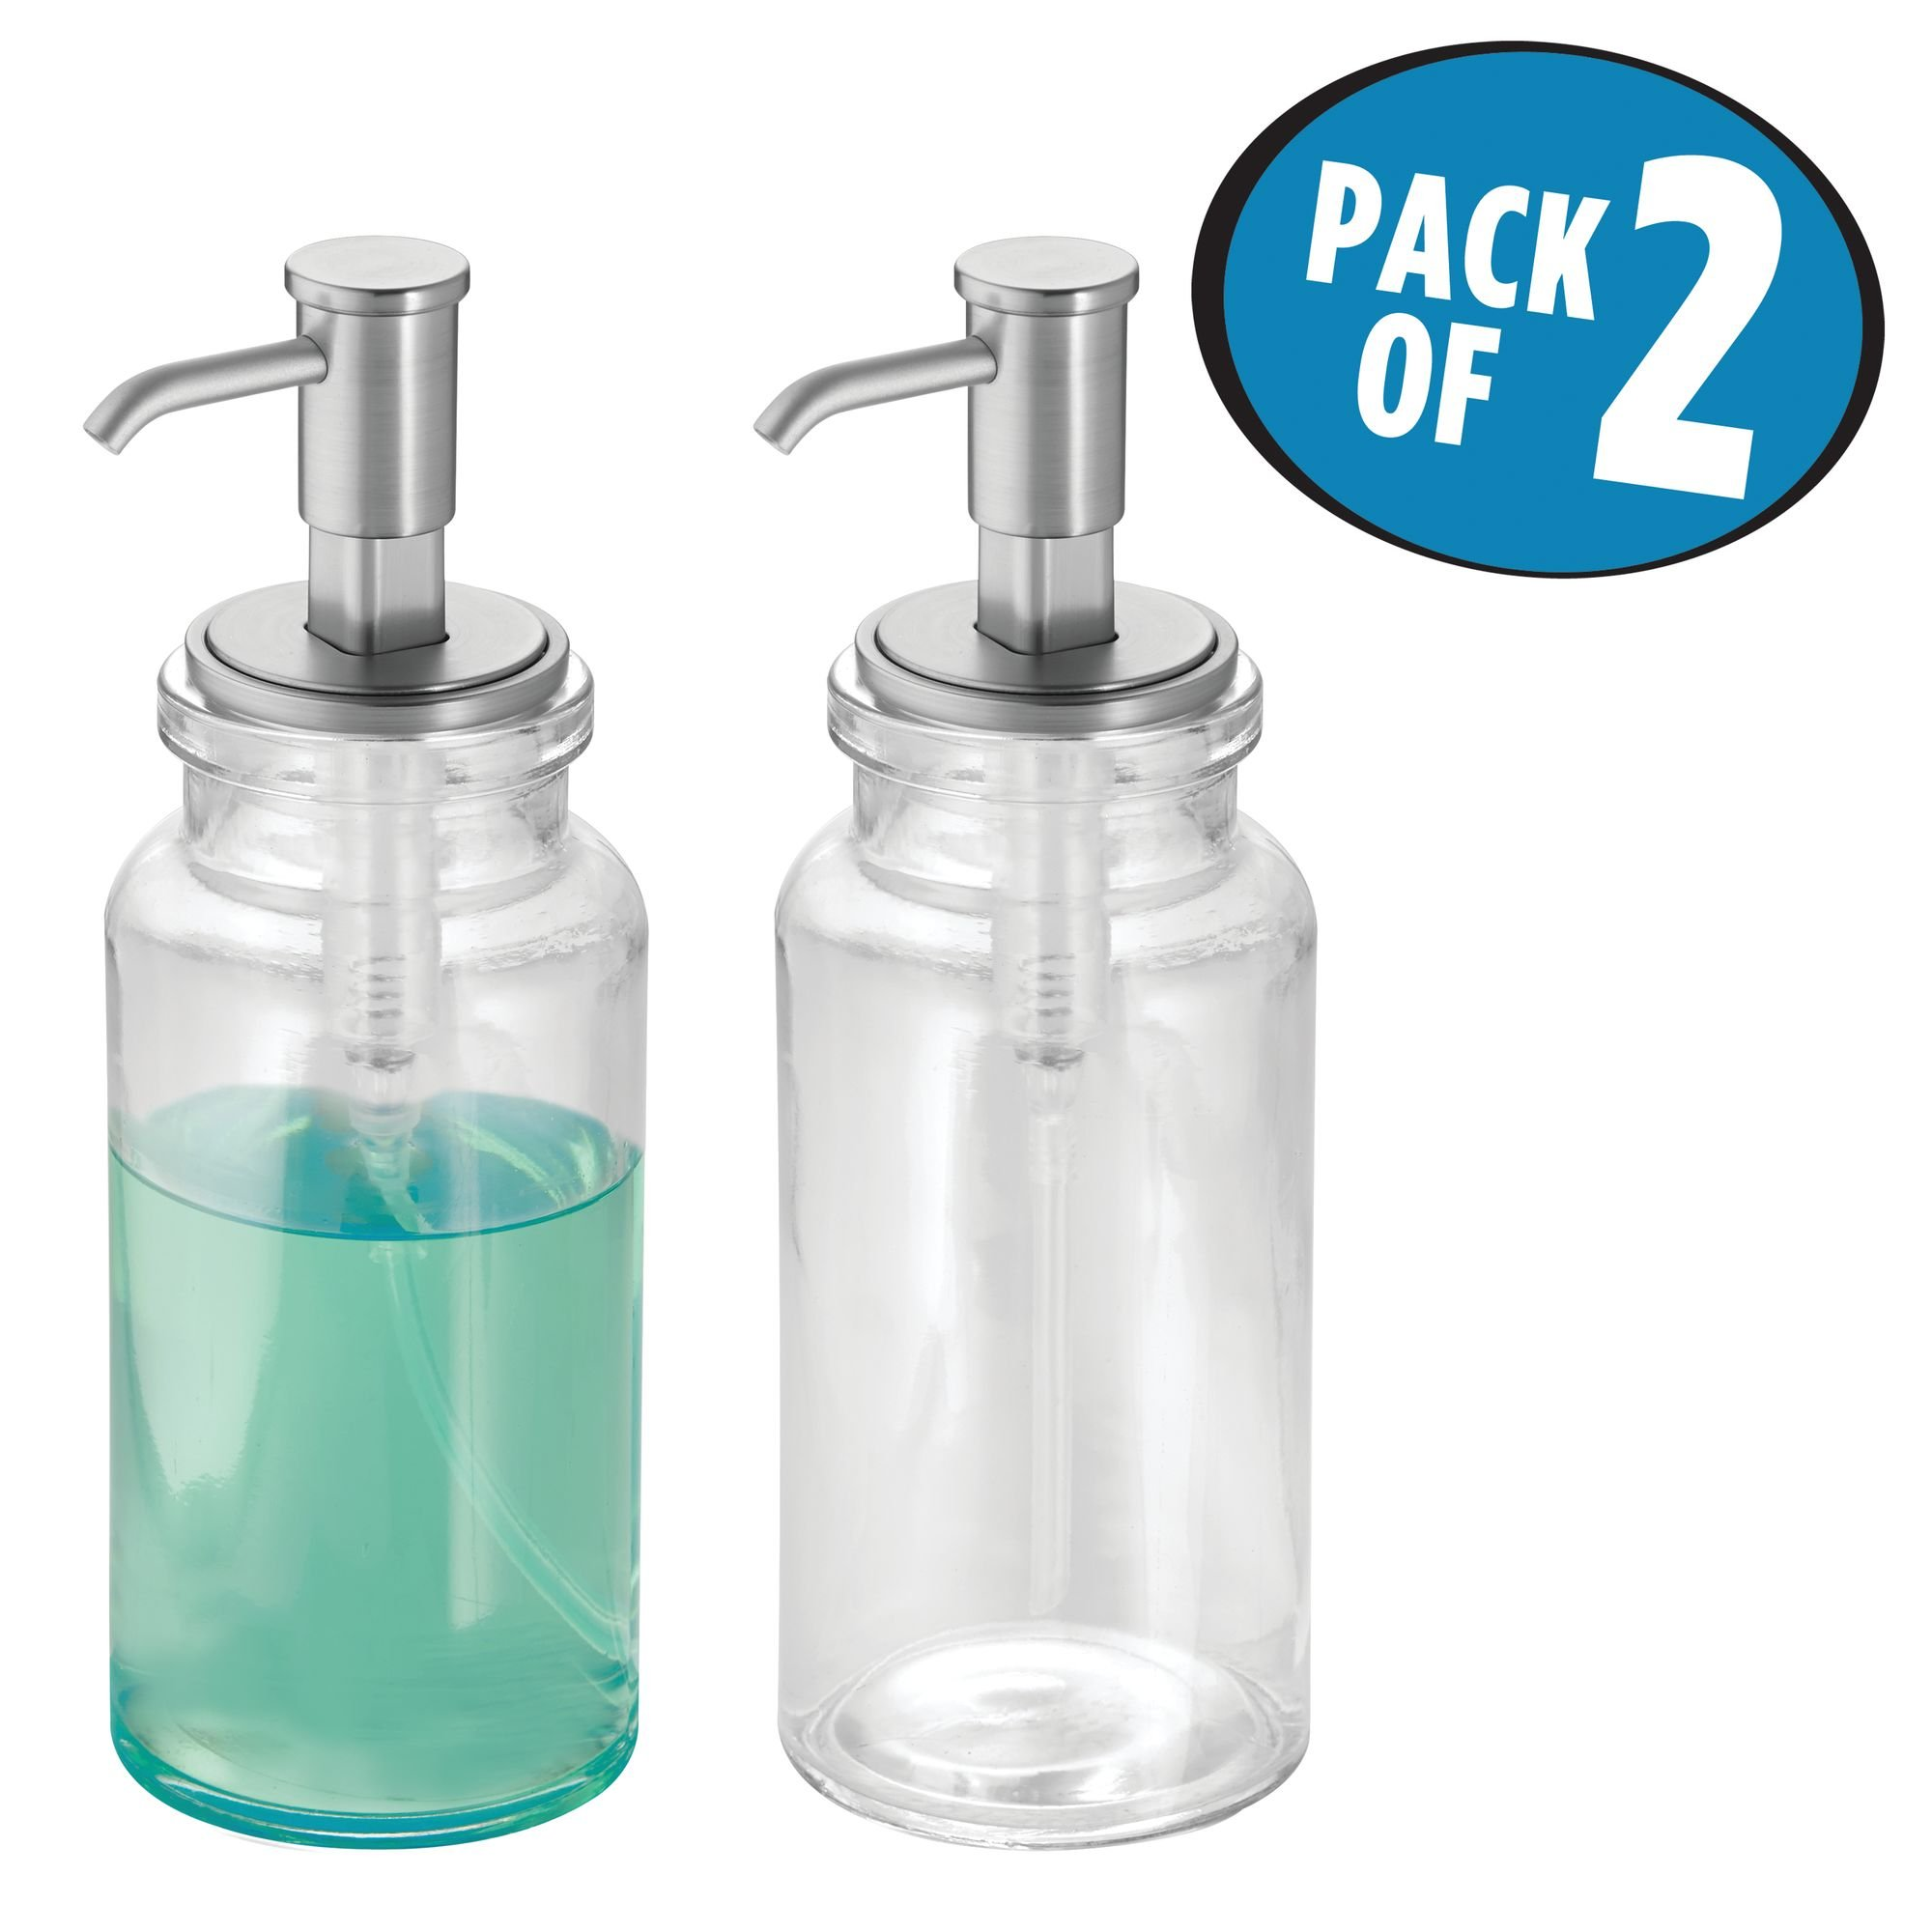 mDesign Liquid Hand Soap Glass Dispenser Pump Bottle for Kitchen, Bathroom | Also Can be Used for Hand Lotion & Essential Oils - Pack of 2, Clear/Brushed Nickel